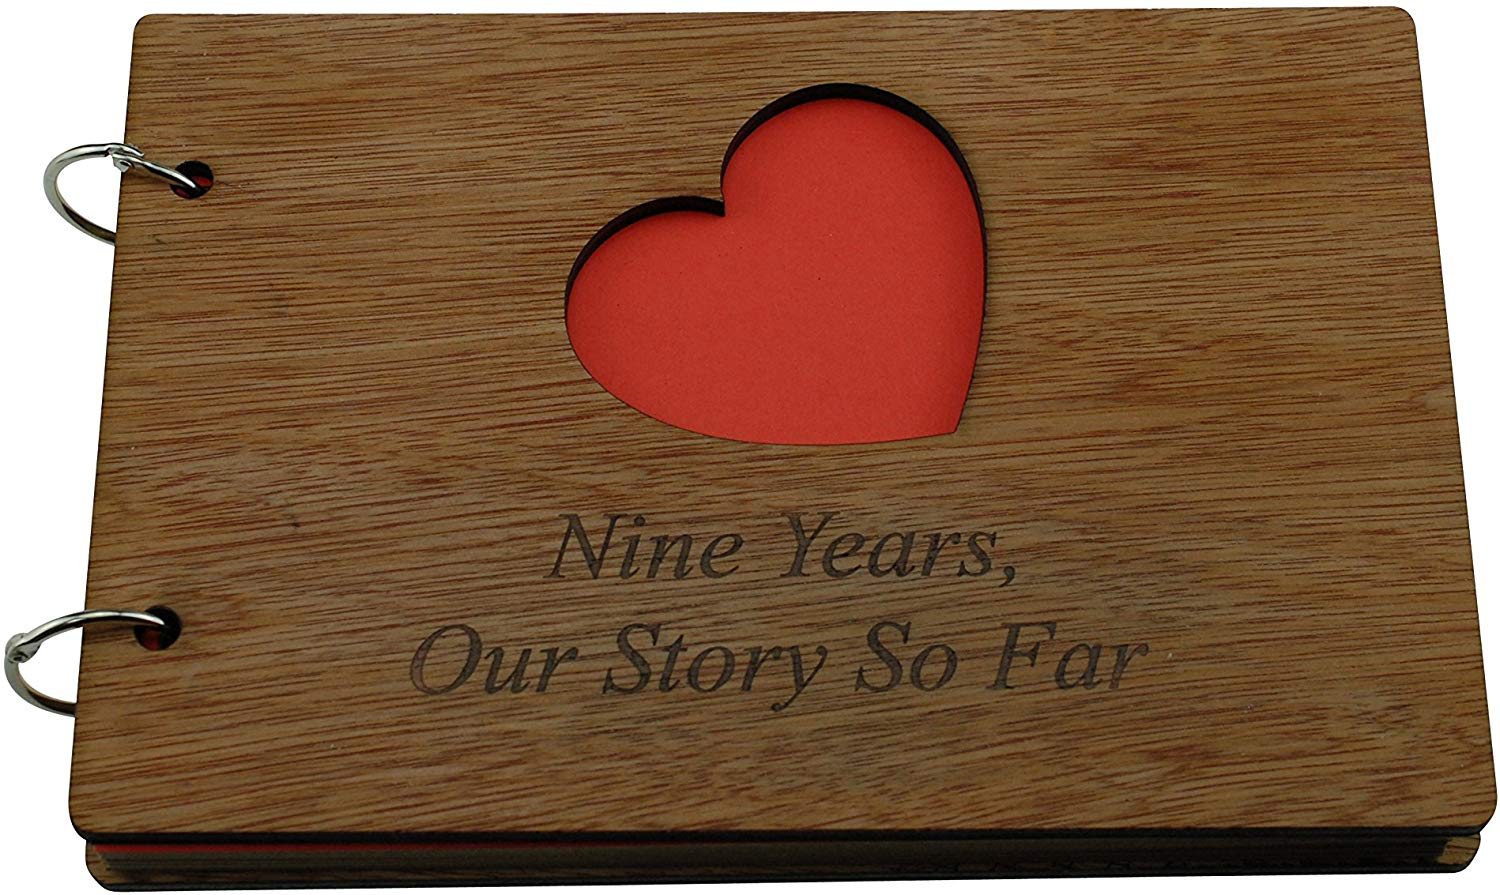 9 Years Our Story So Far - Scrapbook, Photo album or Notebook